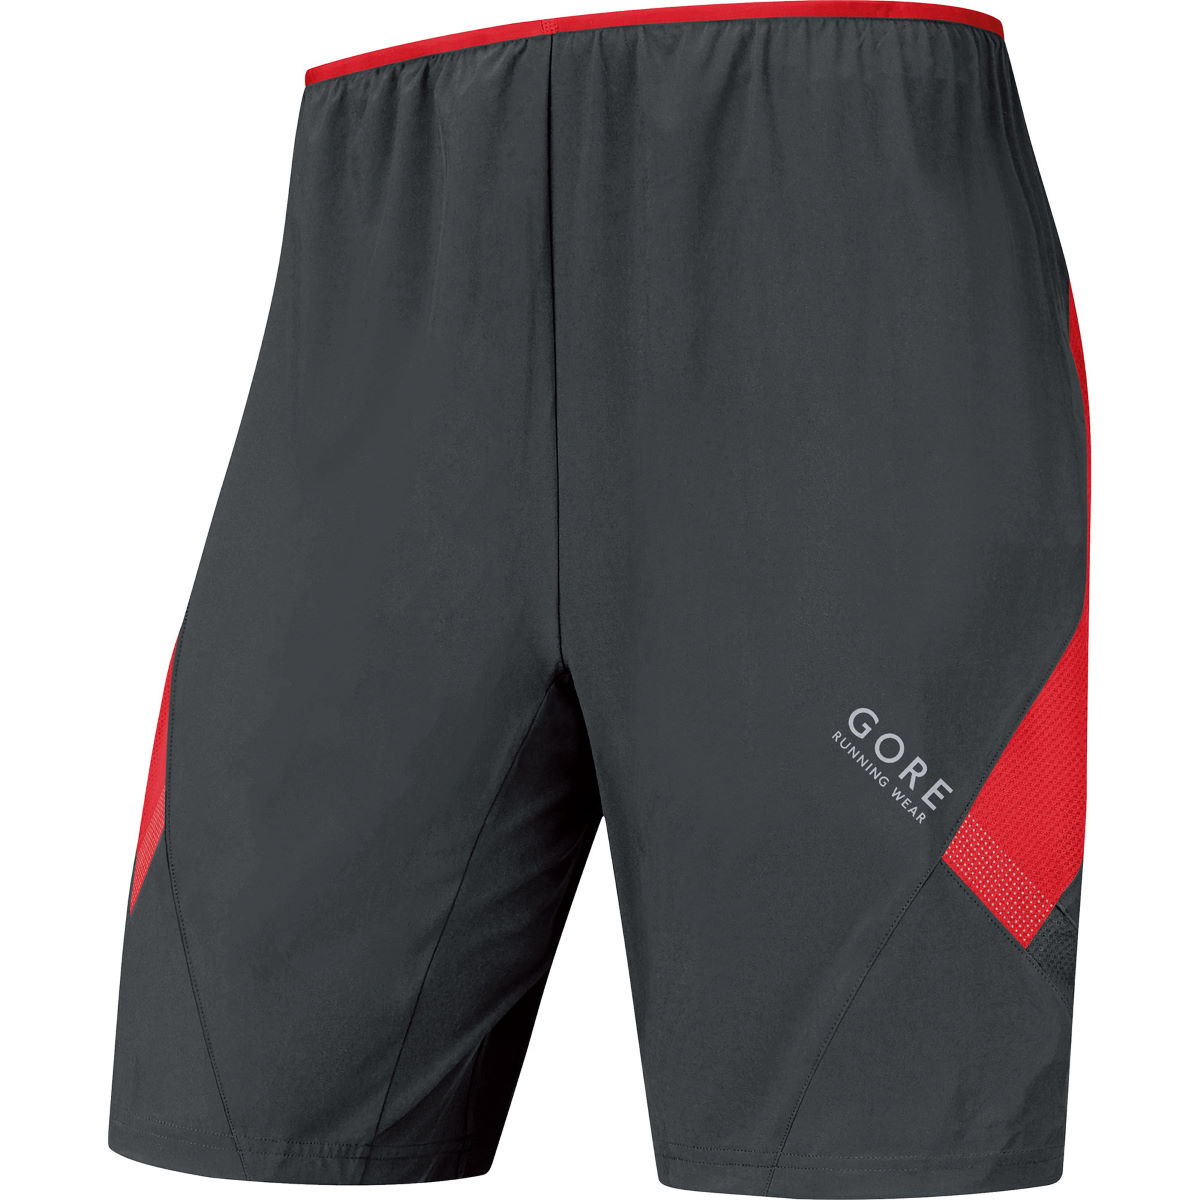 Short Gore Running Wear Air (2 en 1) - XL black/red